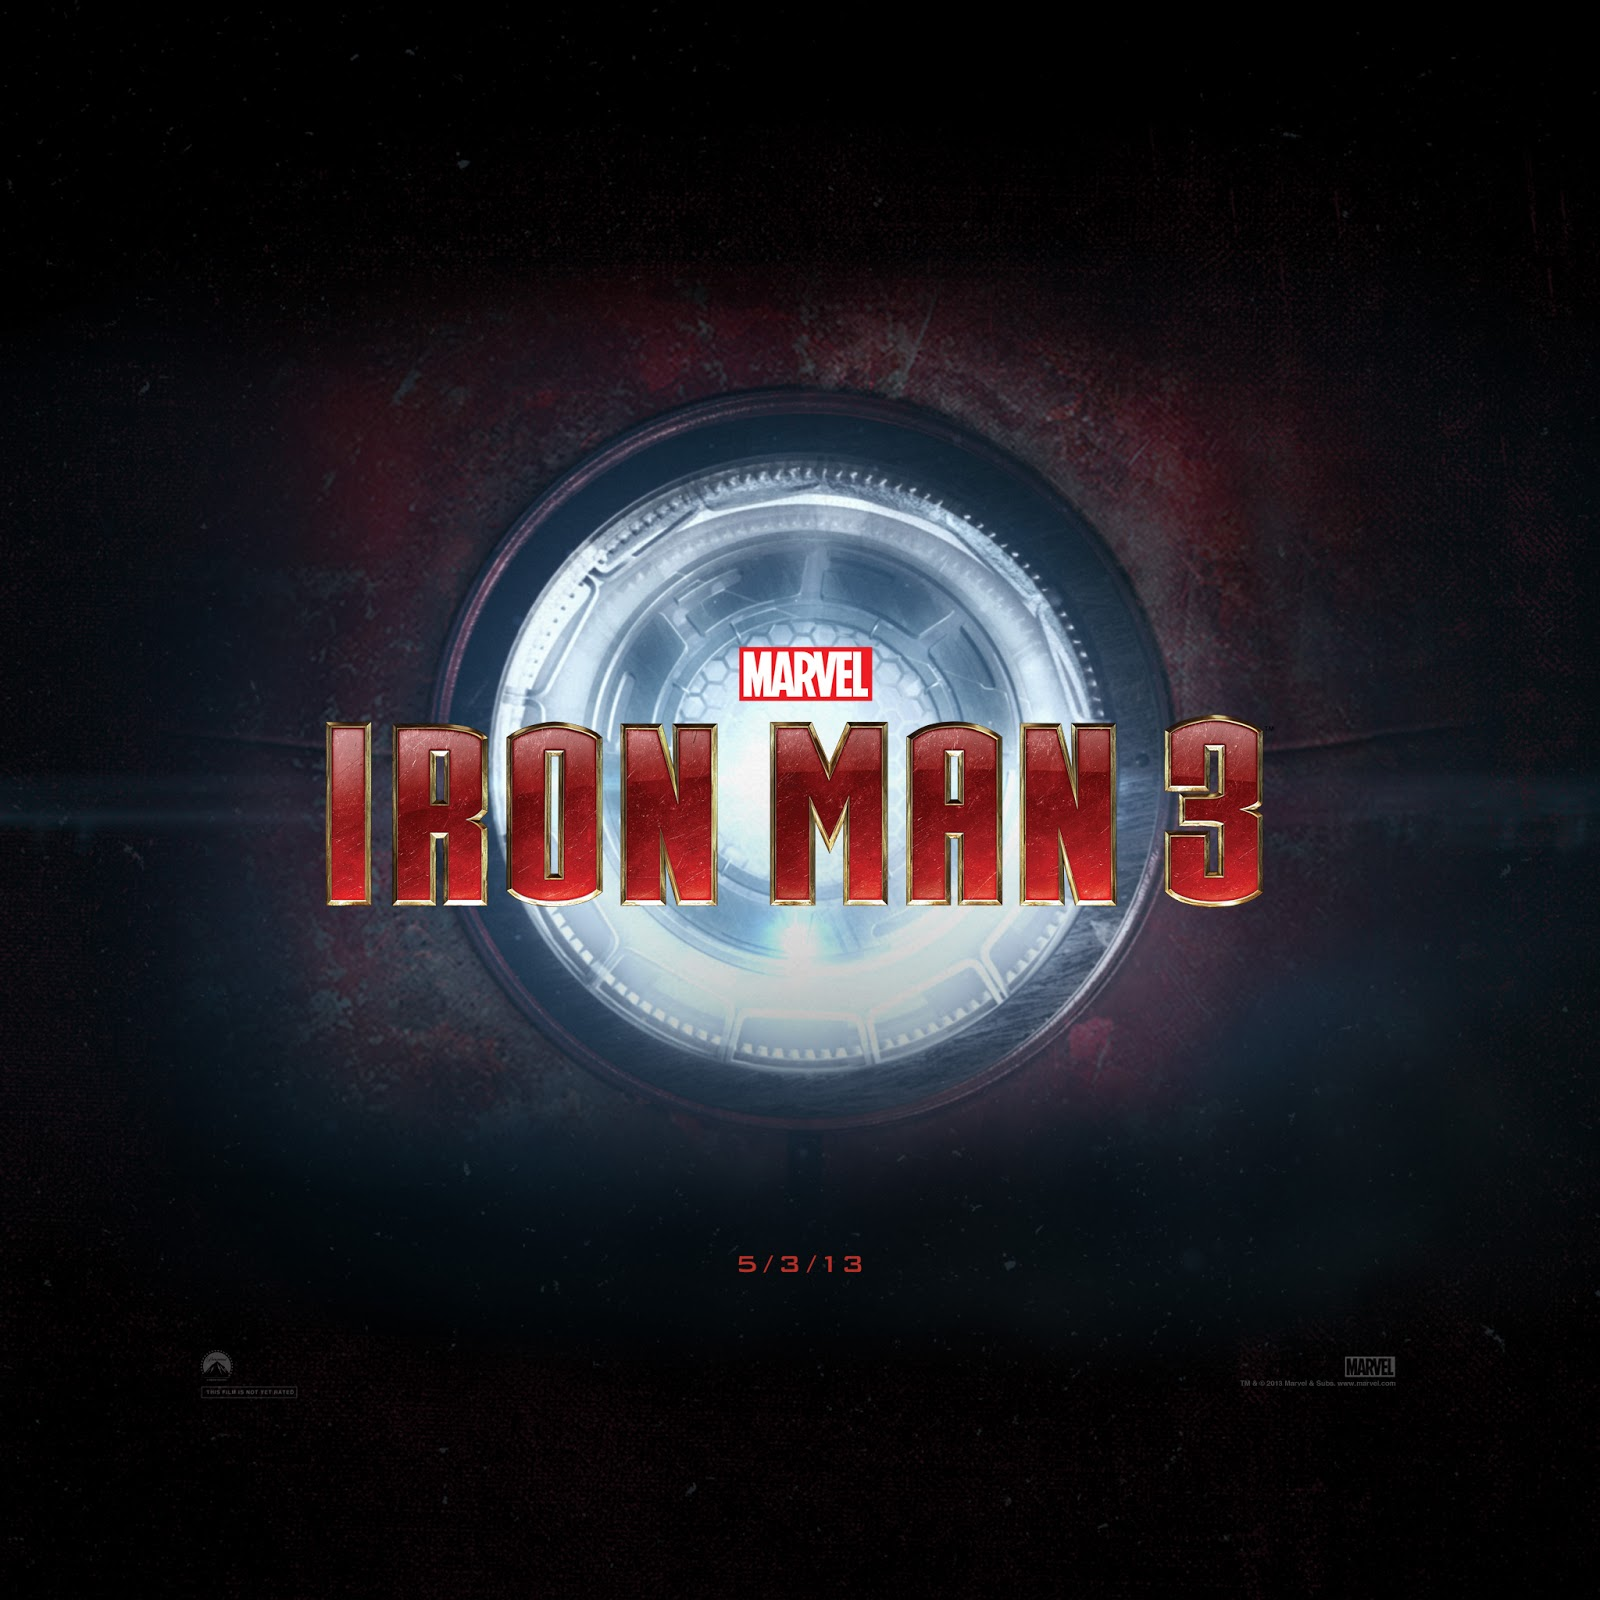 Iron Man 3 iPad wallpaper 2048x2048 004